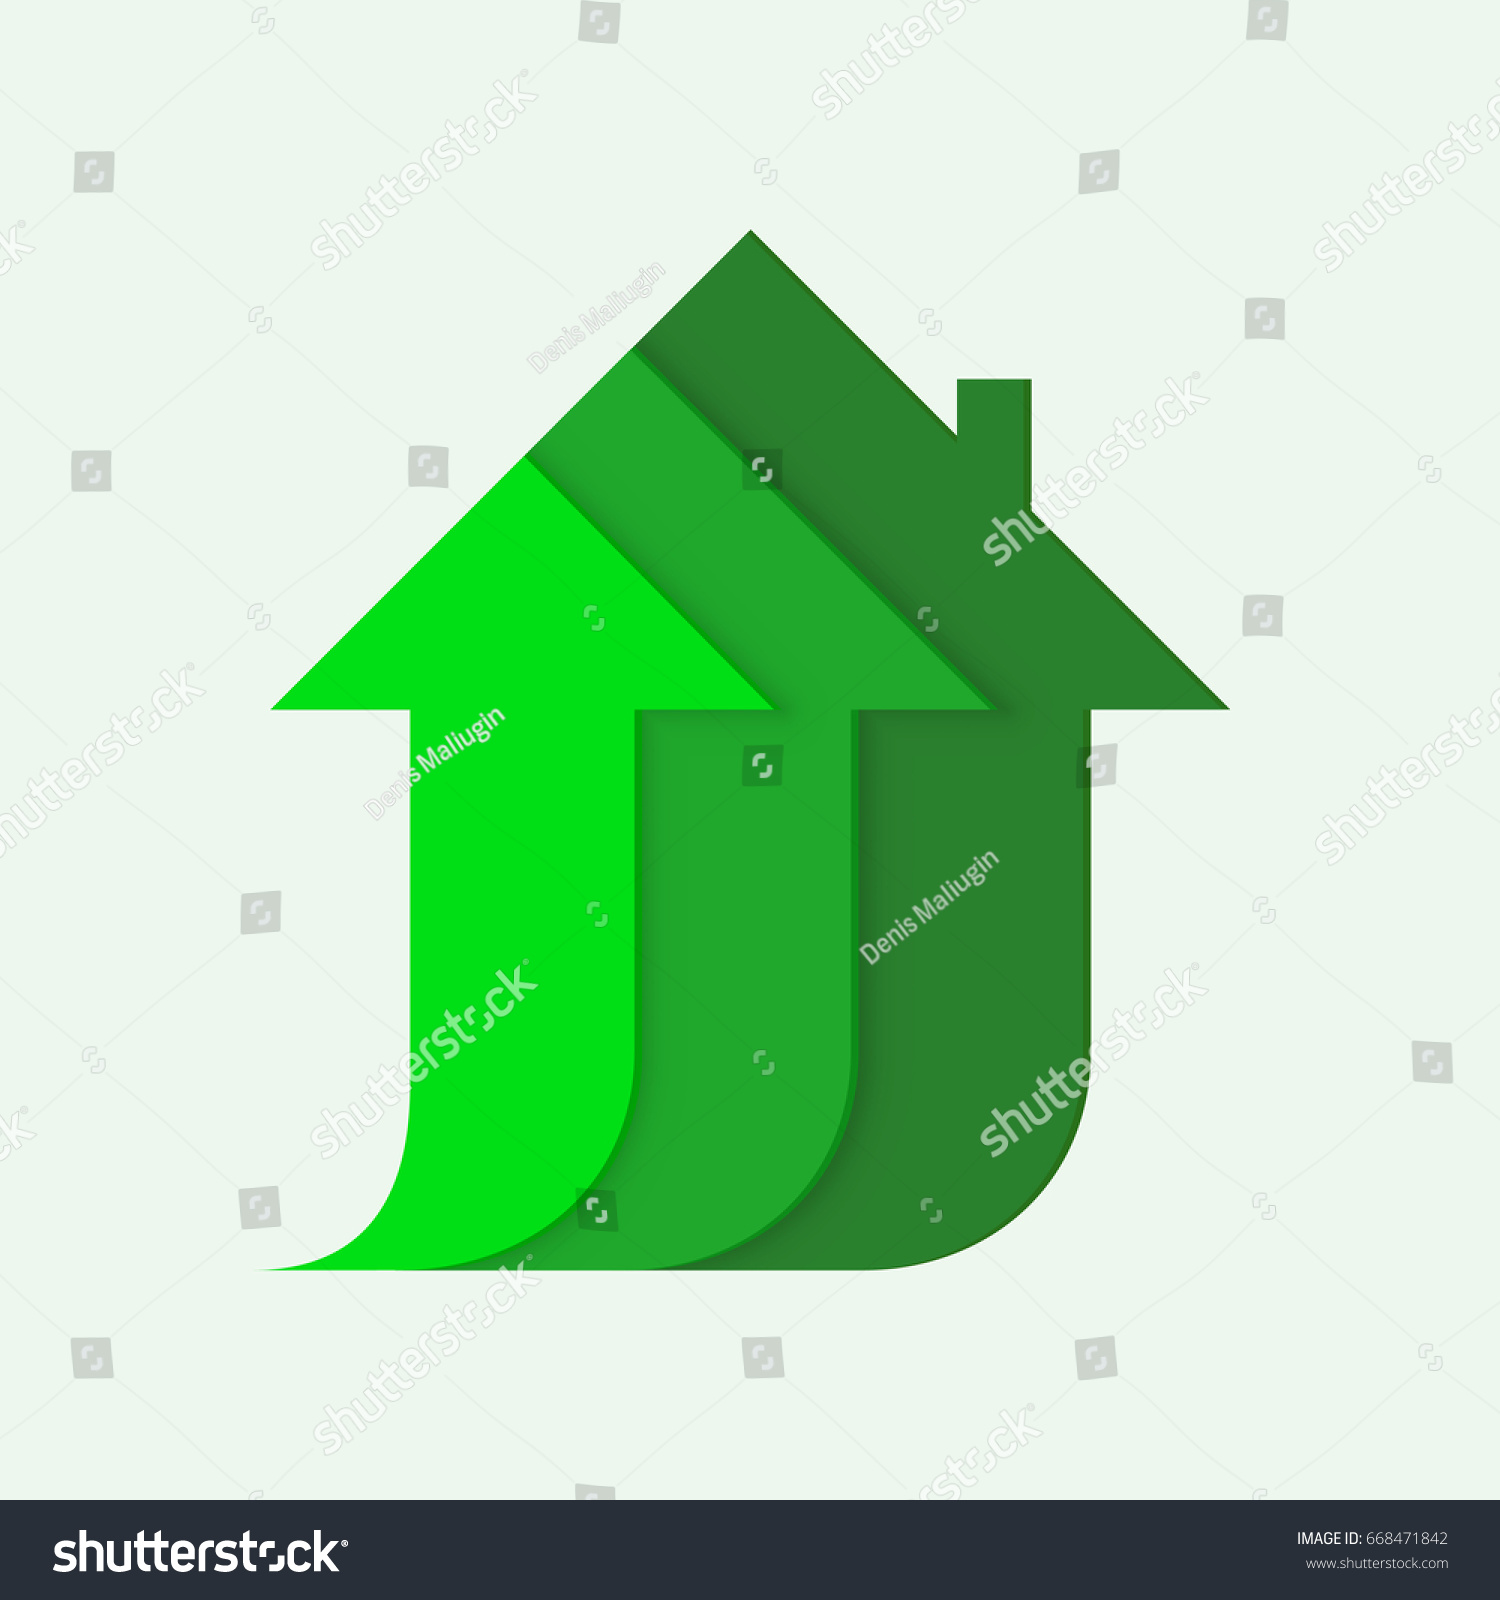 Arrows form silhouette house symbol construction stock vector arrows form the silhouette of a house symbol of construction growth of the housing buycottarizona Image collections